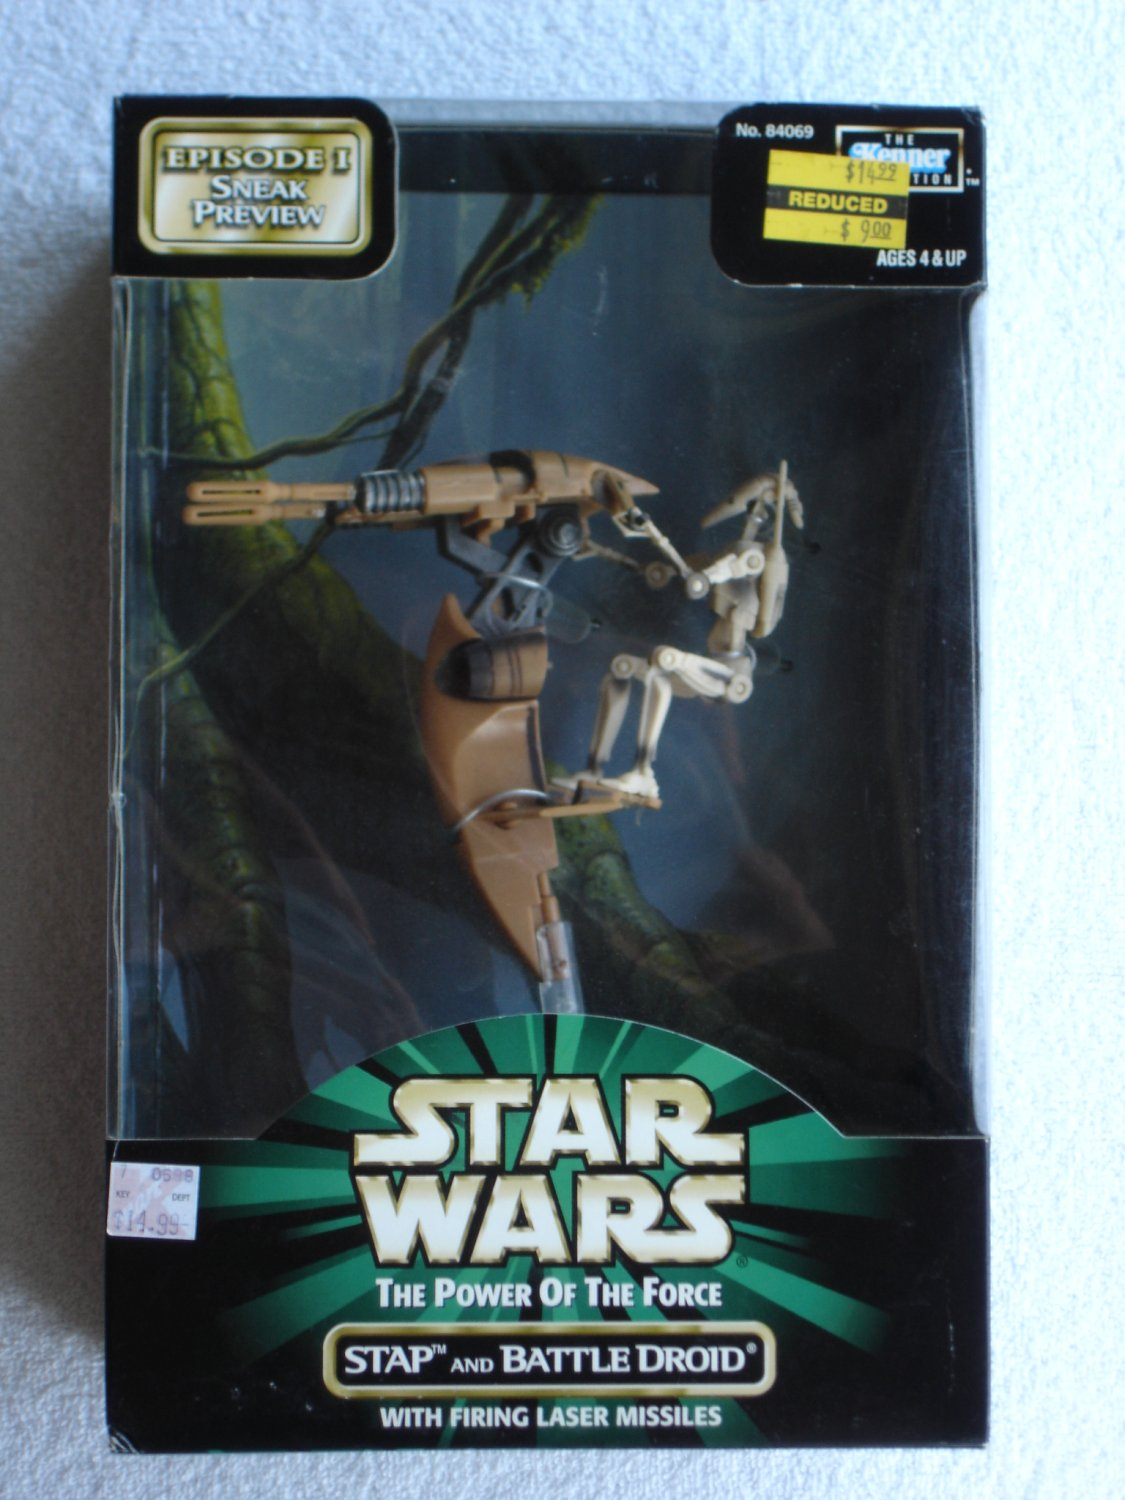 """Star Wars POTF """"Episode I Sneak Preview"""" Stap and Battle Droid"""